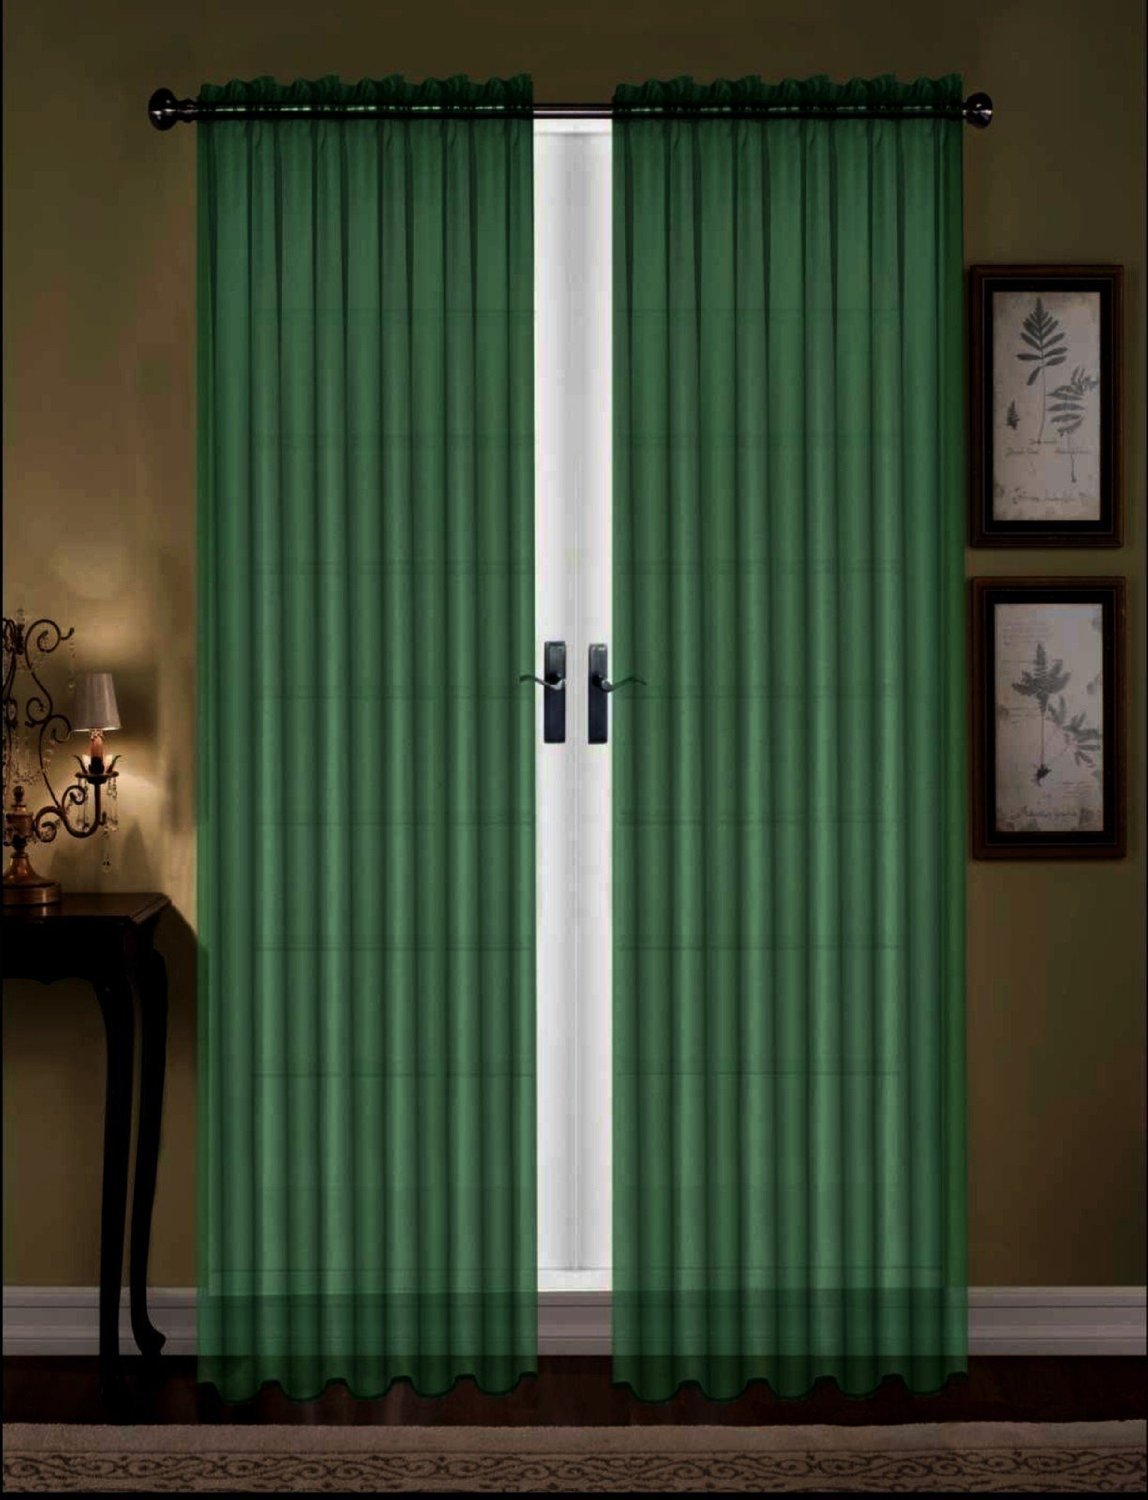 Kelly green velvet curtains - Amazon Com Awad Home Fashion 2 Panels Solid Hunter Green Sheer Voile Window Curtain Treatment Drapes 55 X 84 Home Kitchen